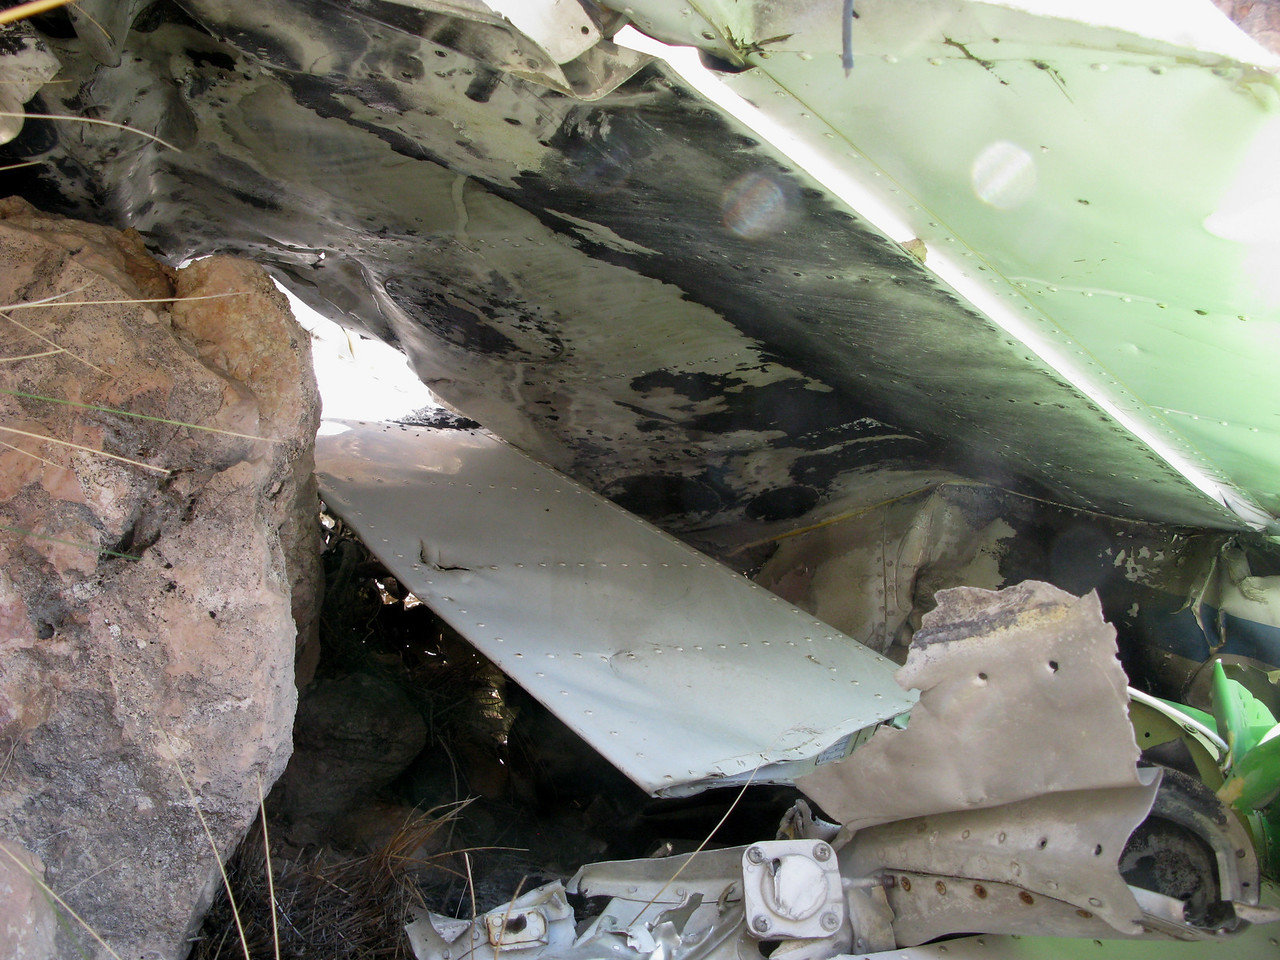 The top of the inverted right wing shows signs of the post crash fire damage to it's surface.